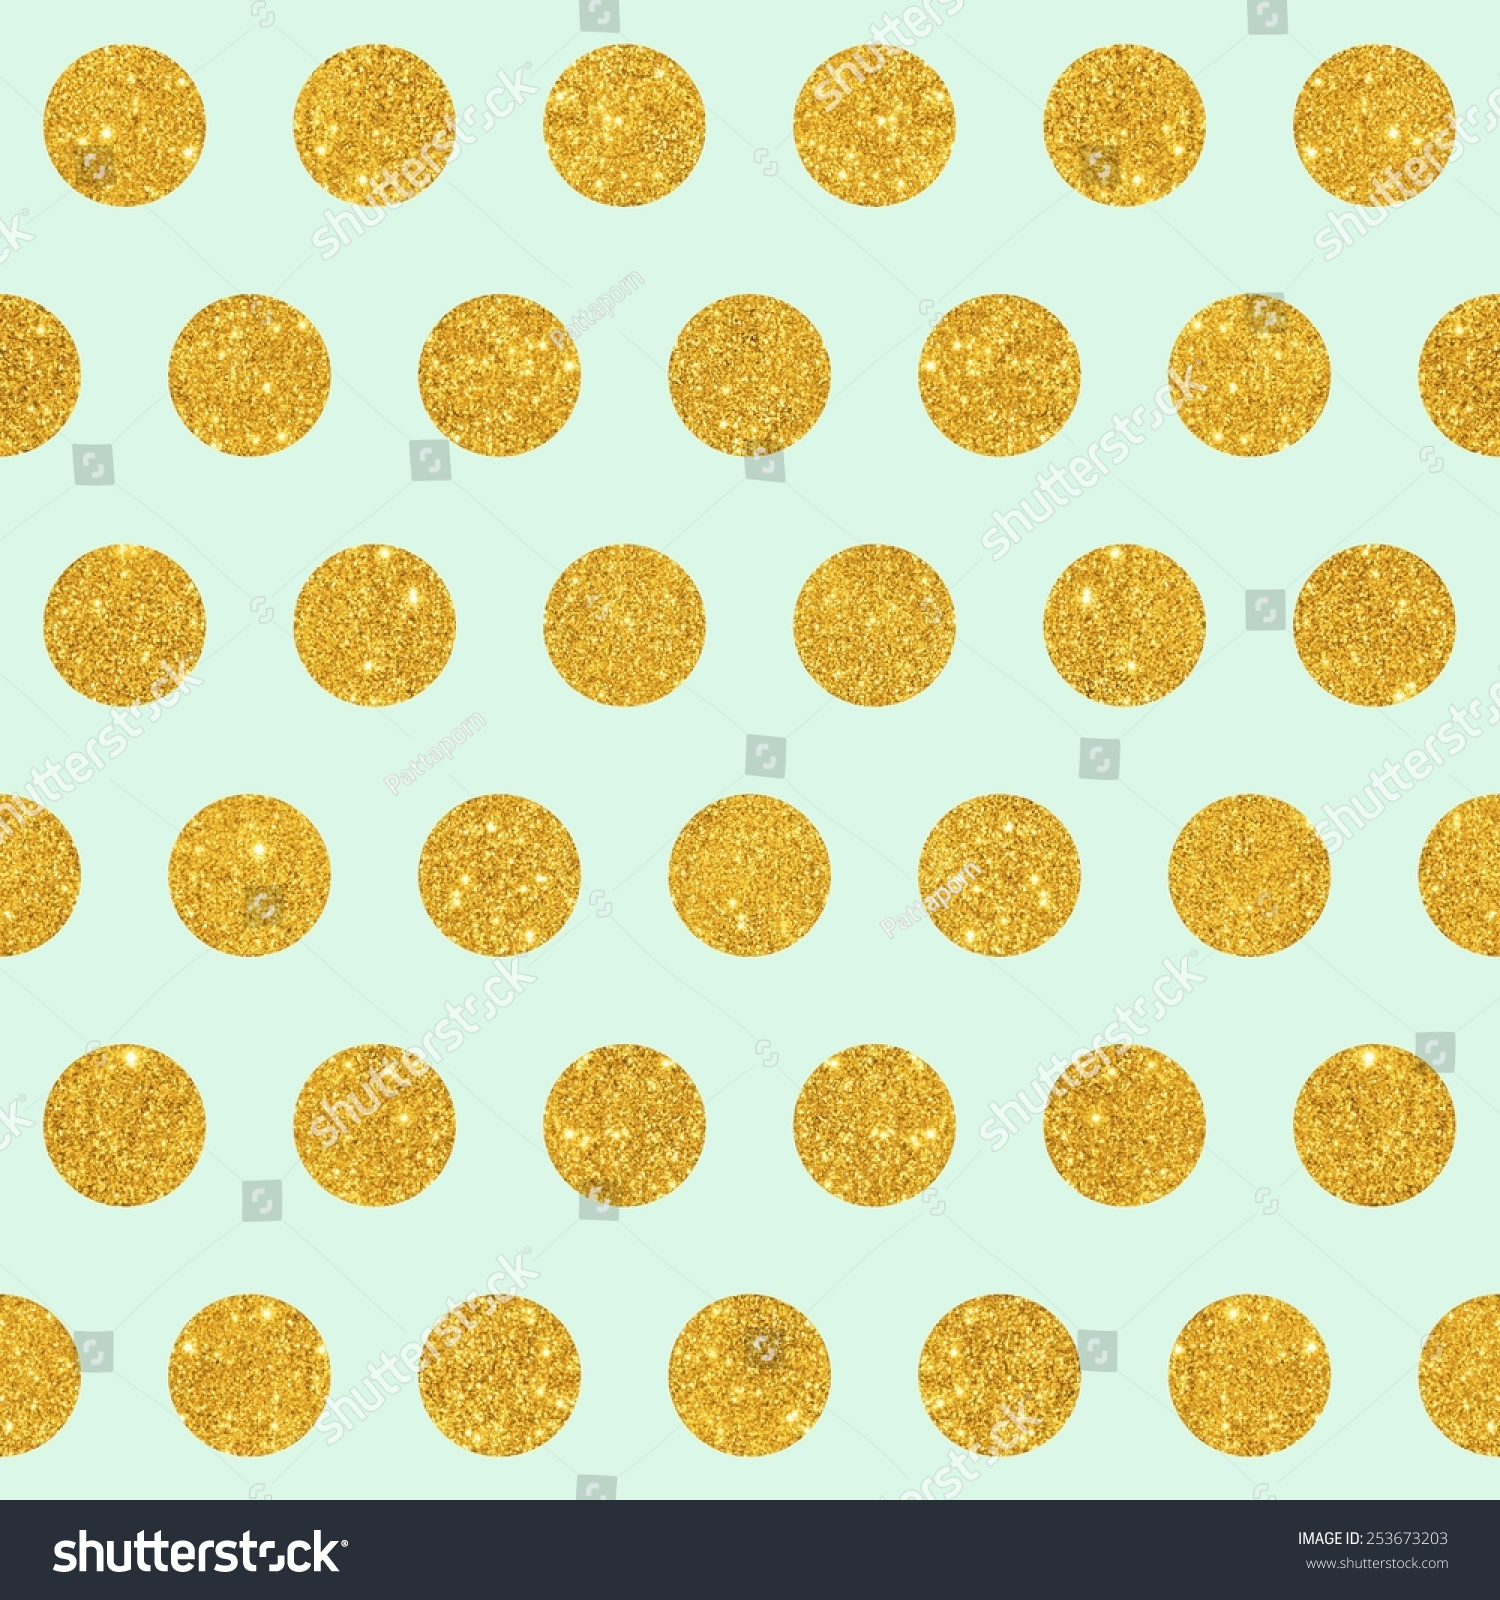 How to scrapbook with glitter - Digital Paper For Scrapbook Mint Gold Glitter Large Polka Dots Pattern Seamless Texture Background